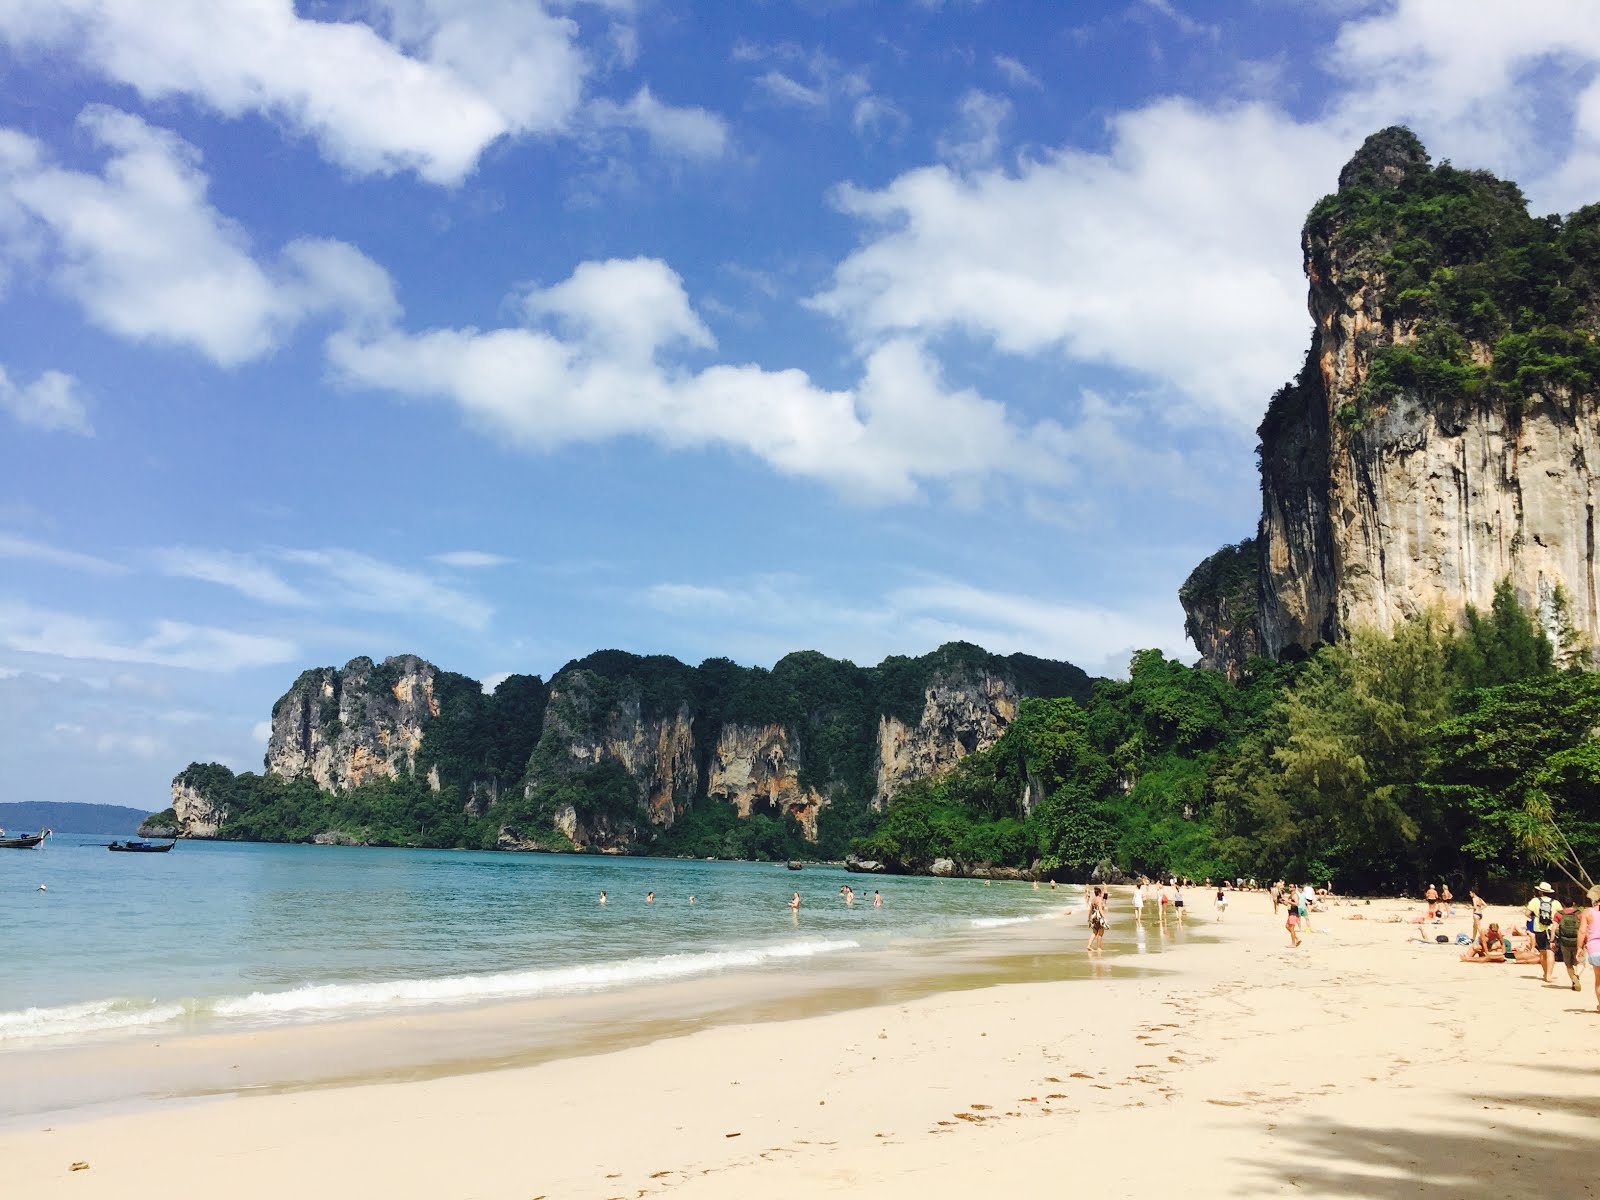 Railay Bay in Krabi, Thailand